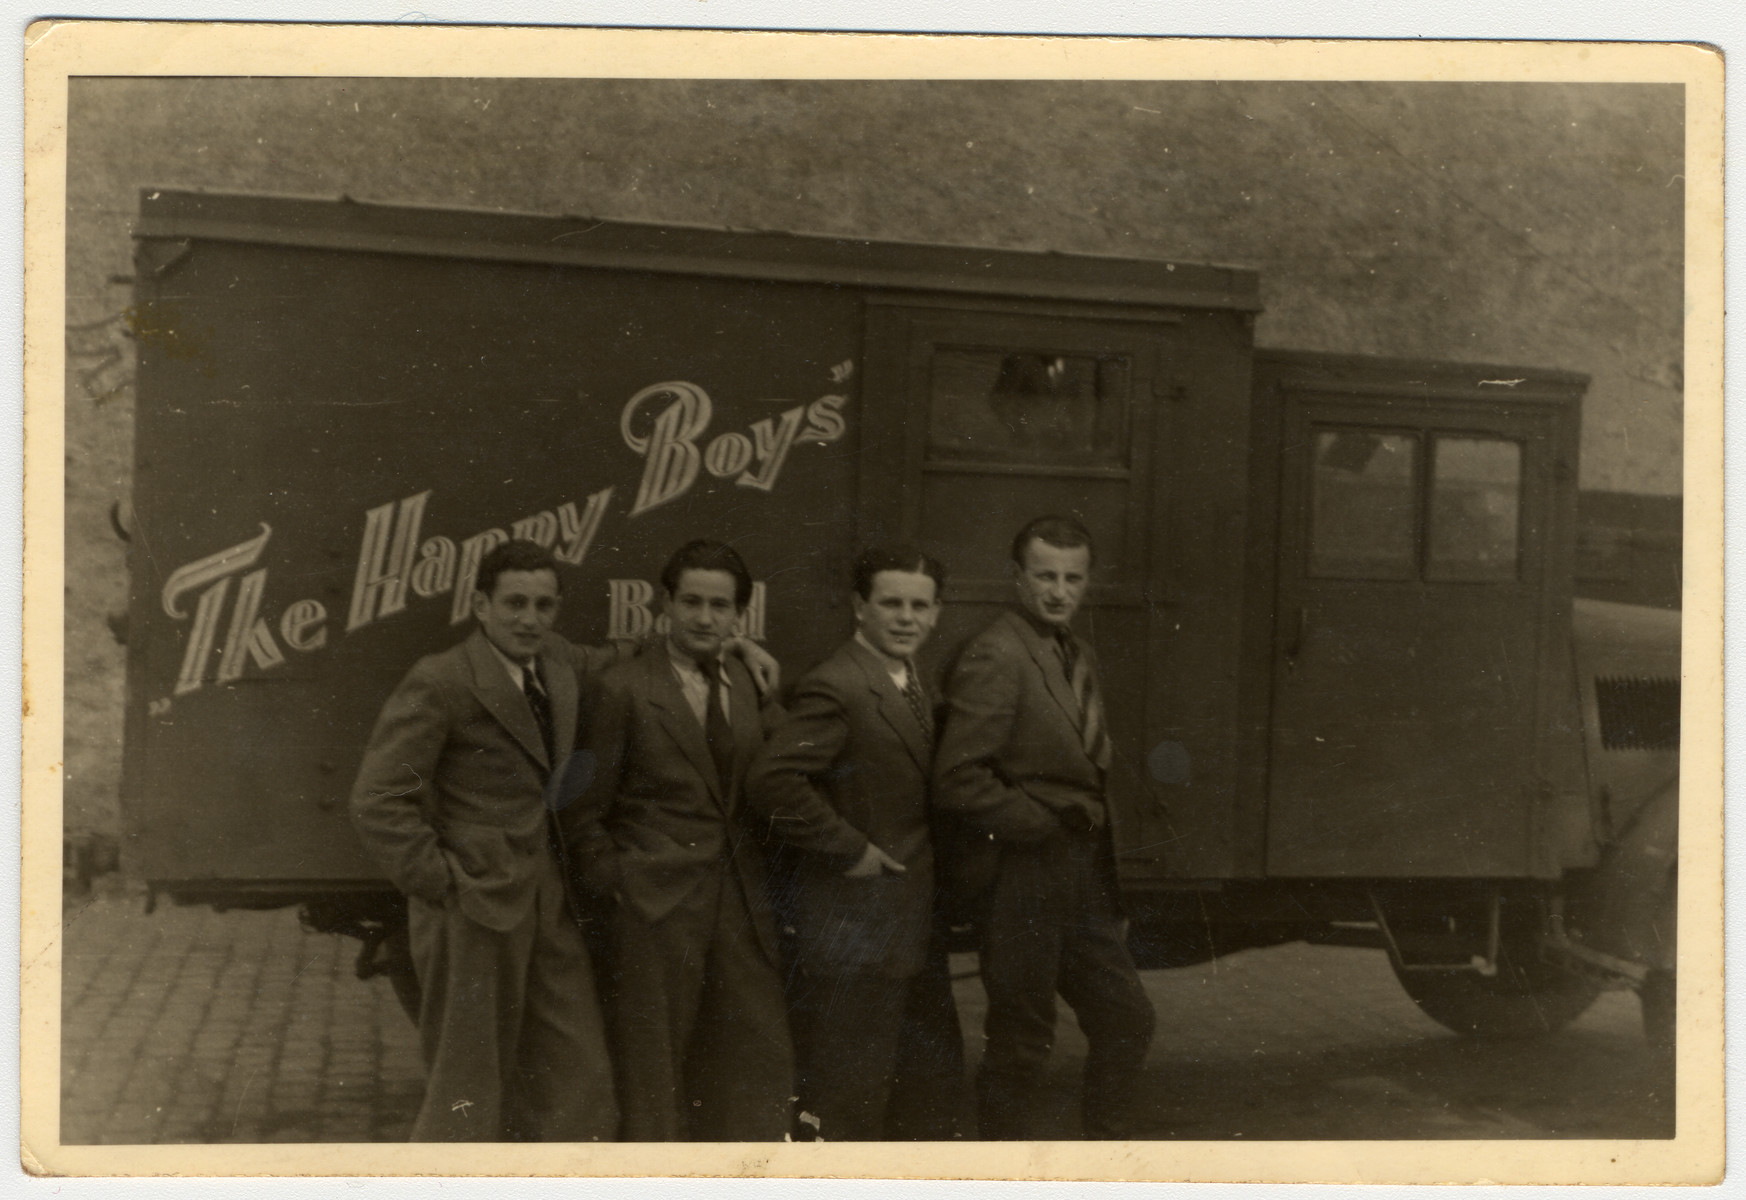 "Four survivors of the Lodz ghetto pose in front of a truck labeled ""The Happy Boys"" in a DP camp in Germany.   First and second from the left are Leon Kniker (now Kent) and Romek Kniker (now Kent), the donor's brothers.   ""The Happy Boys"" was a swing and jazz band which performed at DP camps throughout Germany from 1945-49.  Many of its members had previously been musicians in the Lodz ghetto."